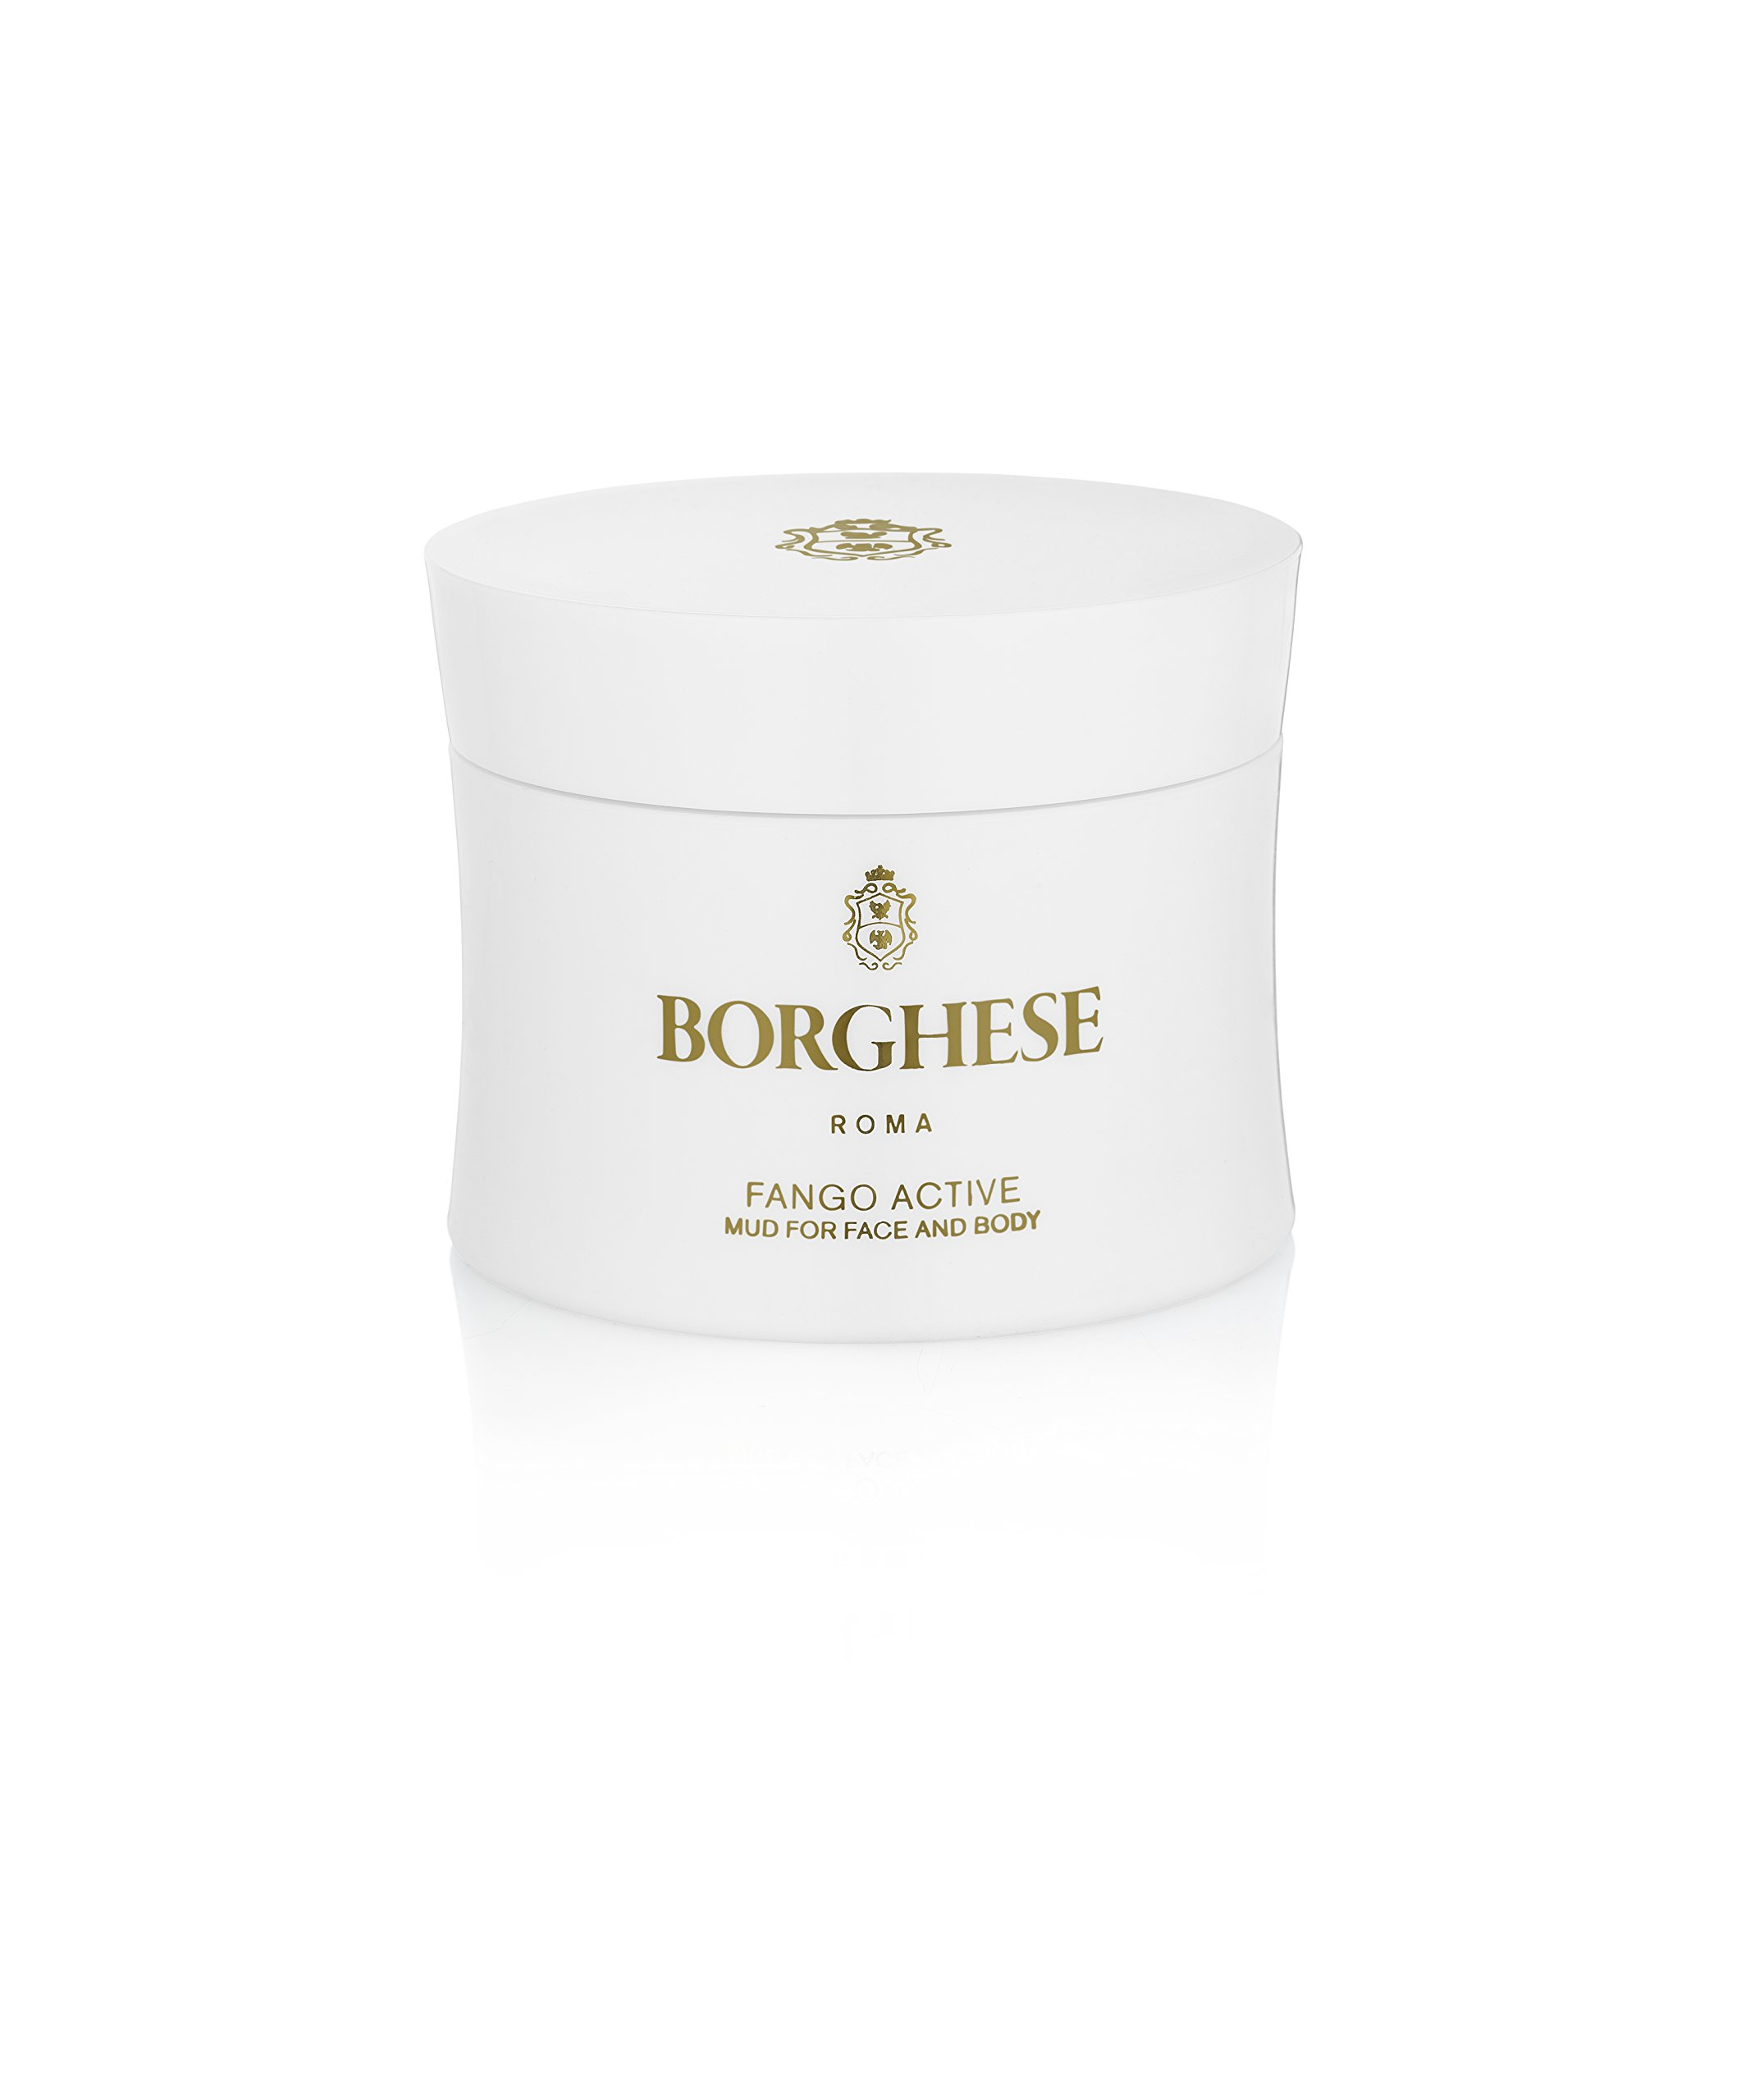 Borghese Fango Active Mud for Face and Body, 2.7 oz. by Borghese